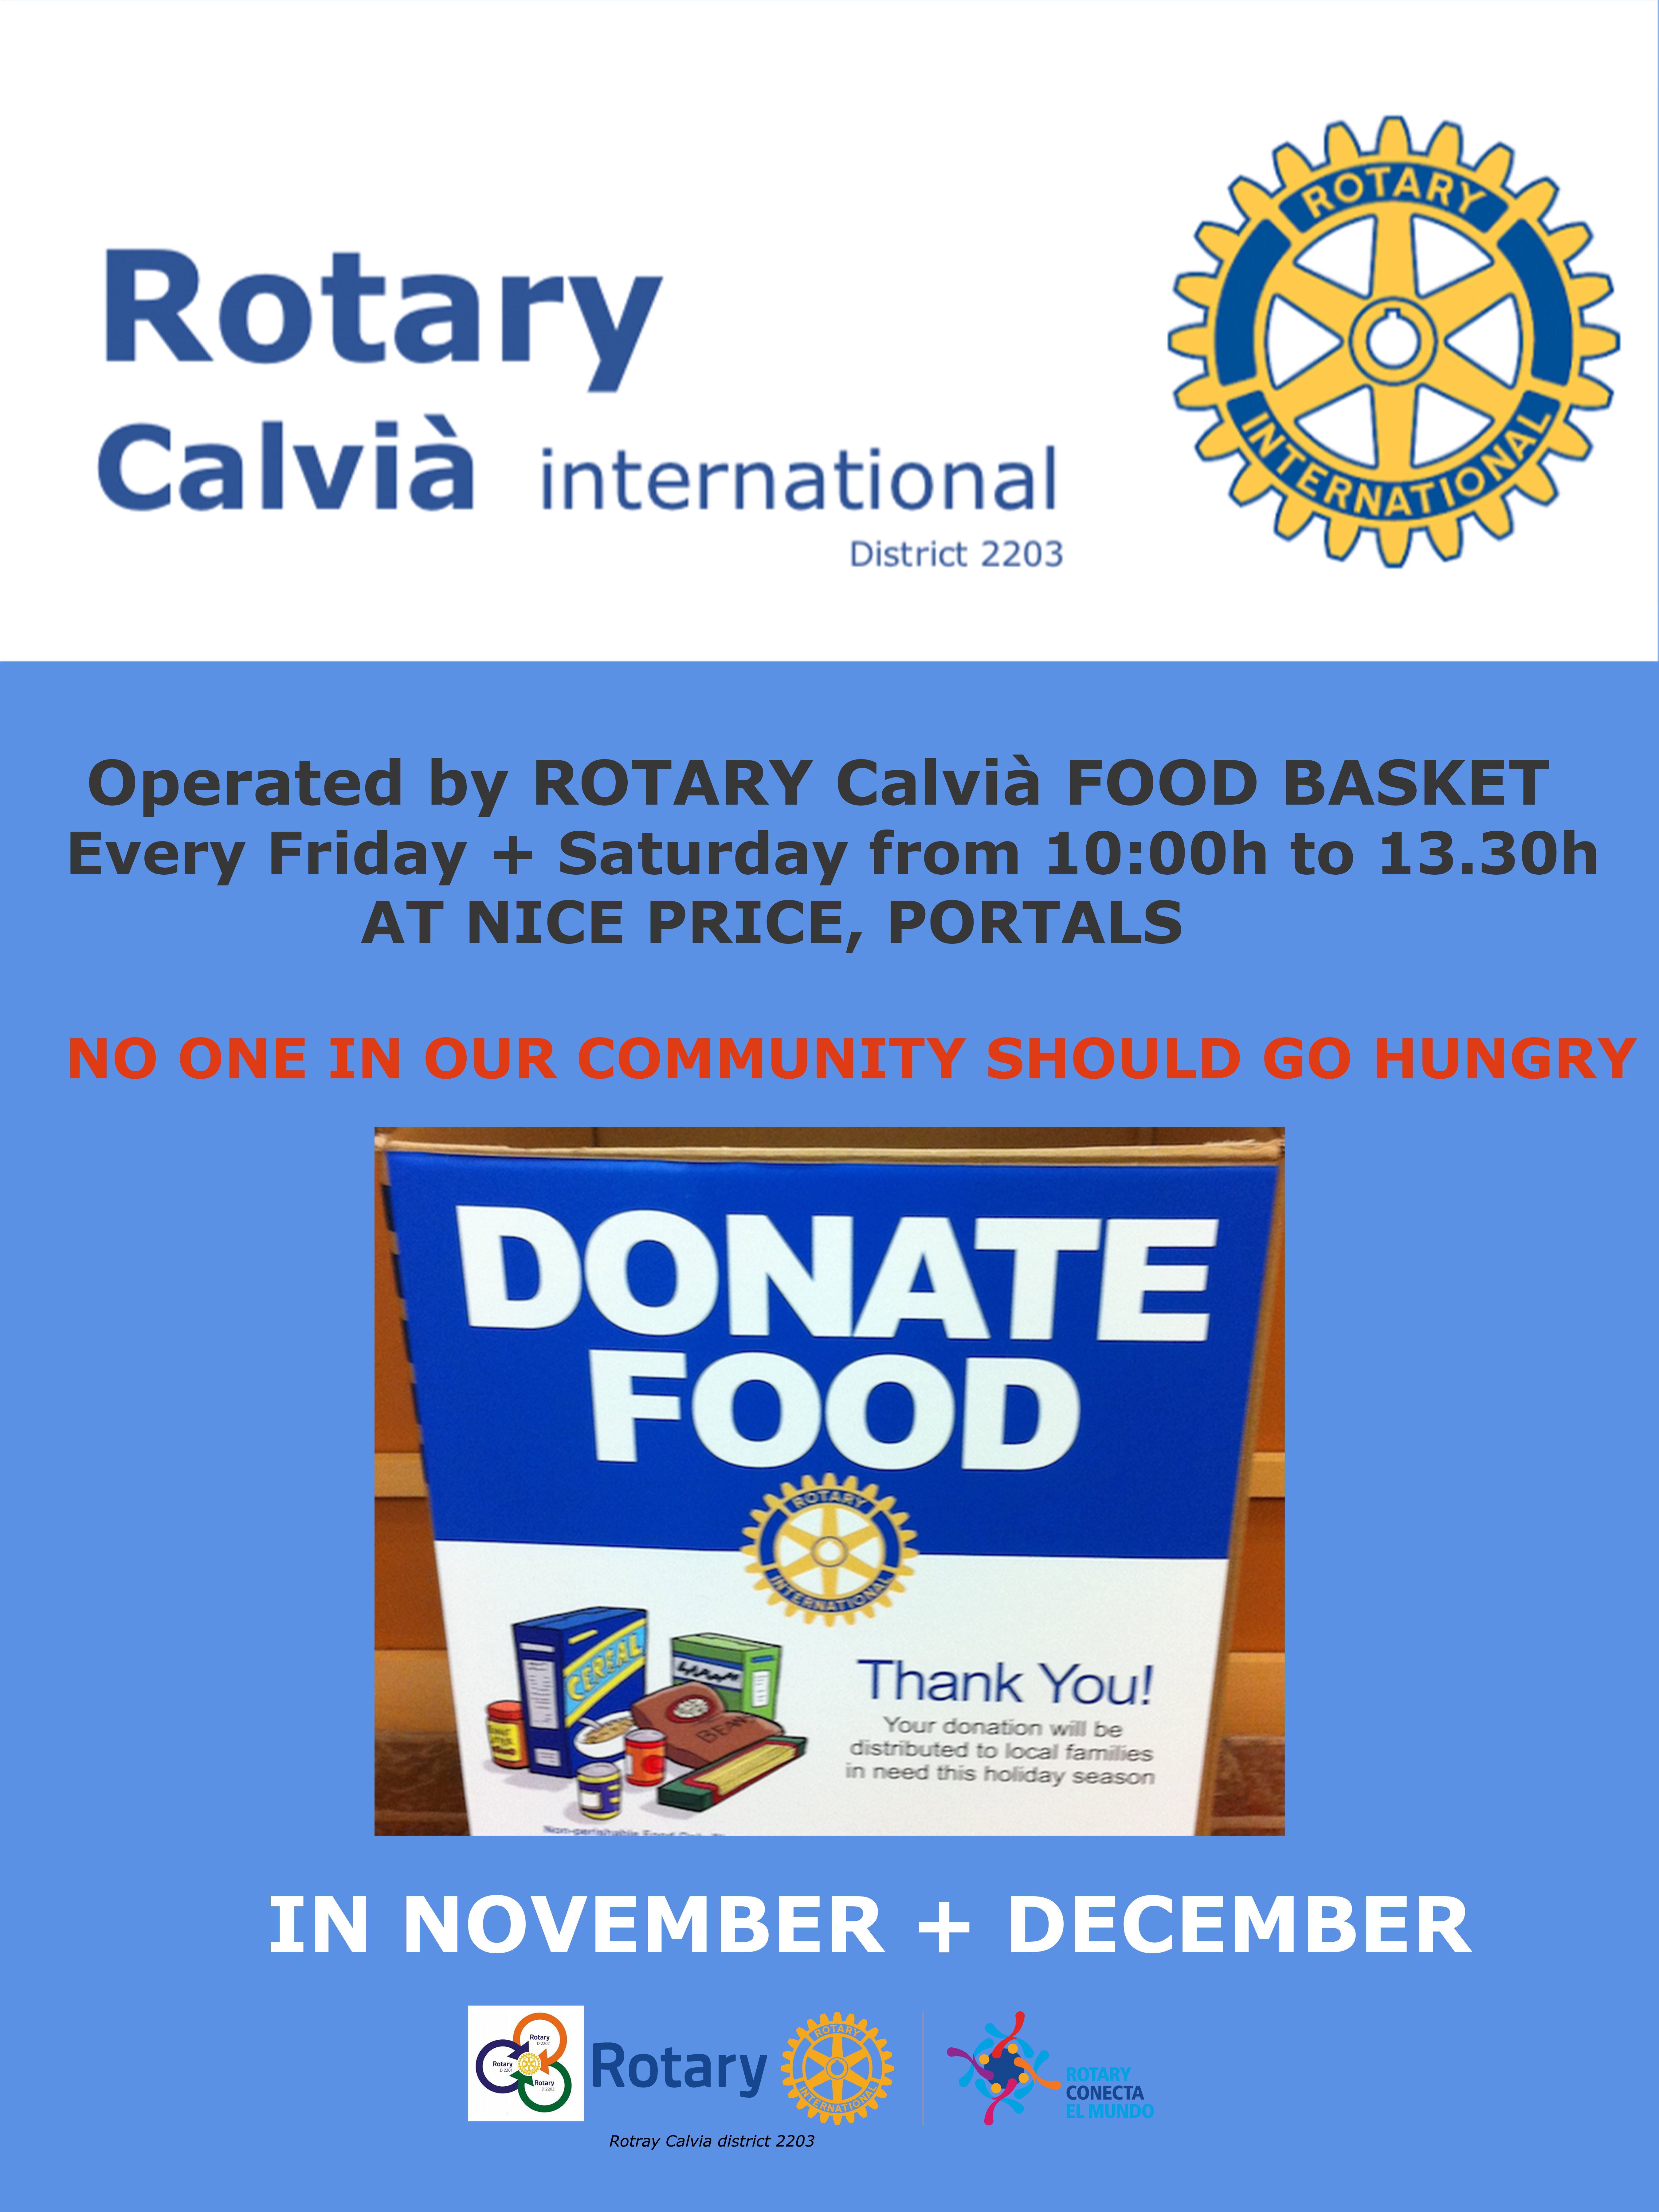 Rotary Food Basket Project started